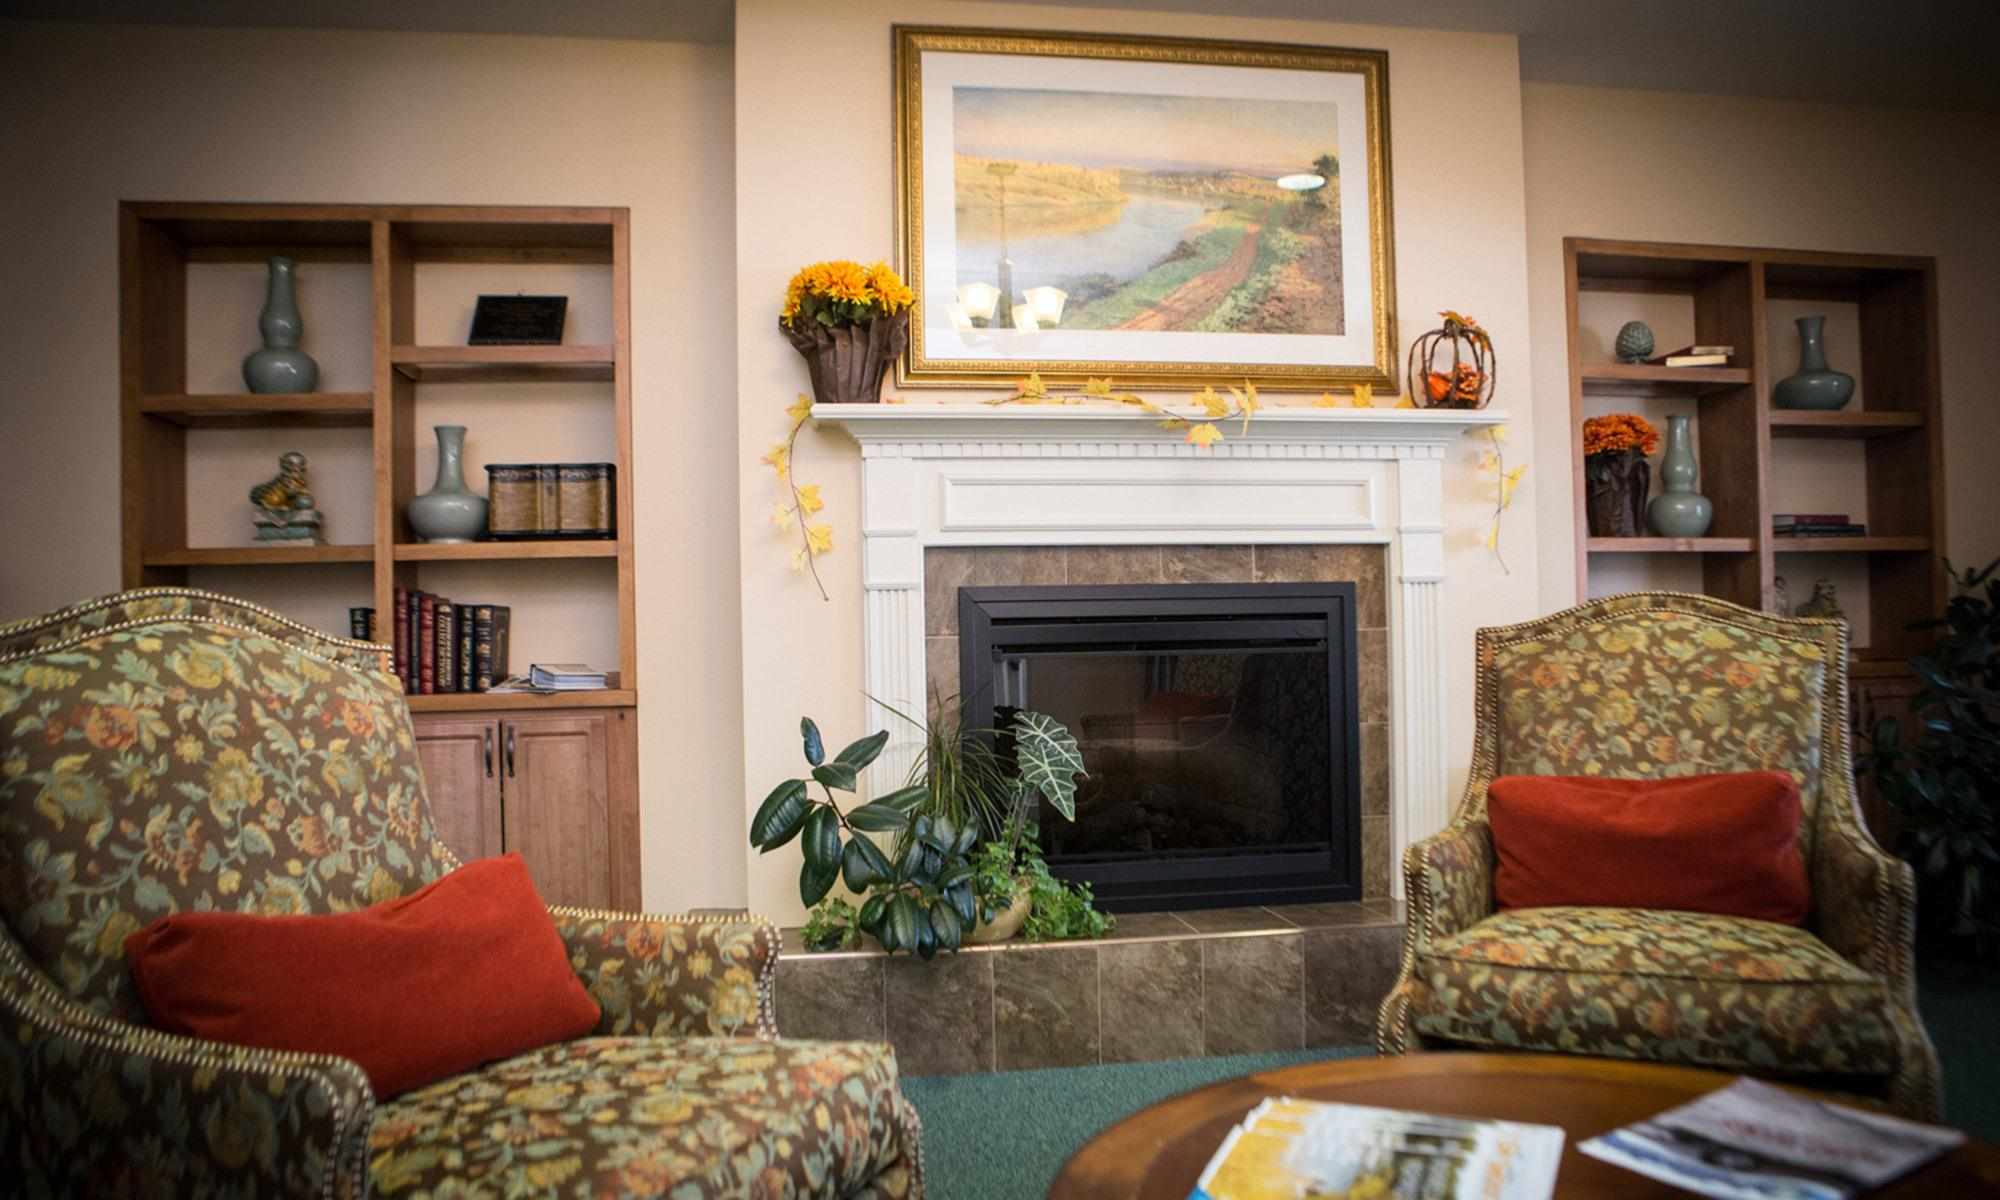 Senior living in Cadillac has an open common room